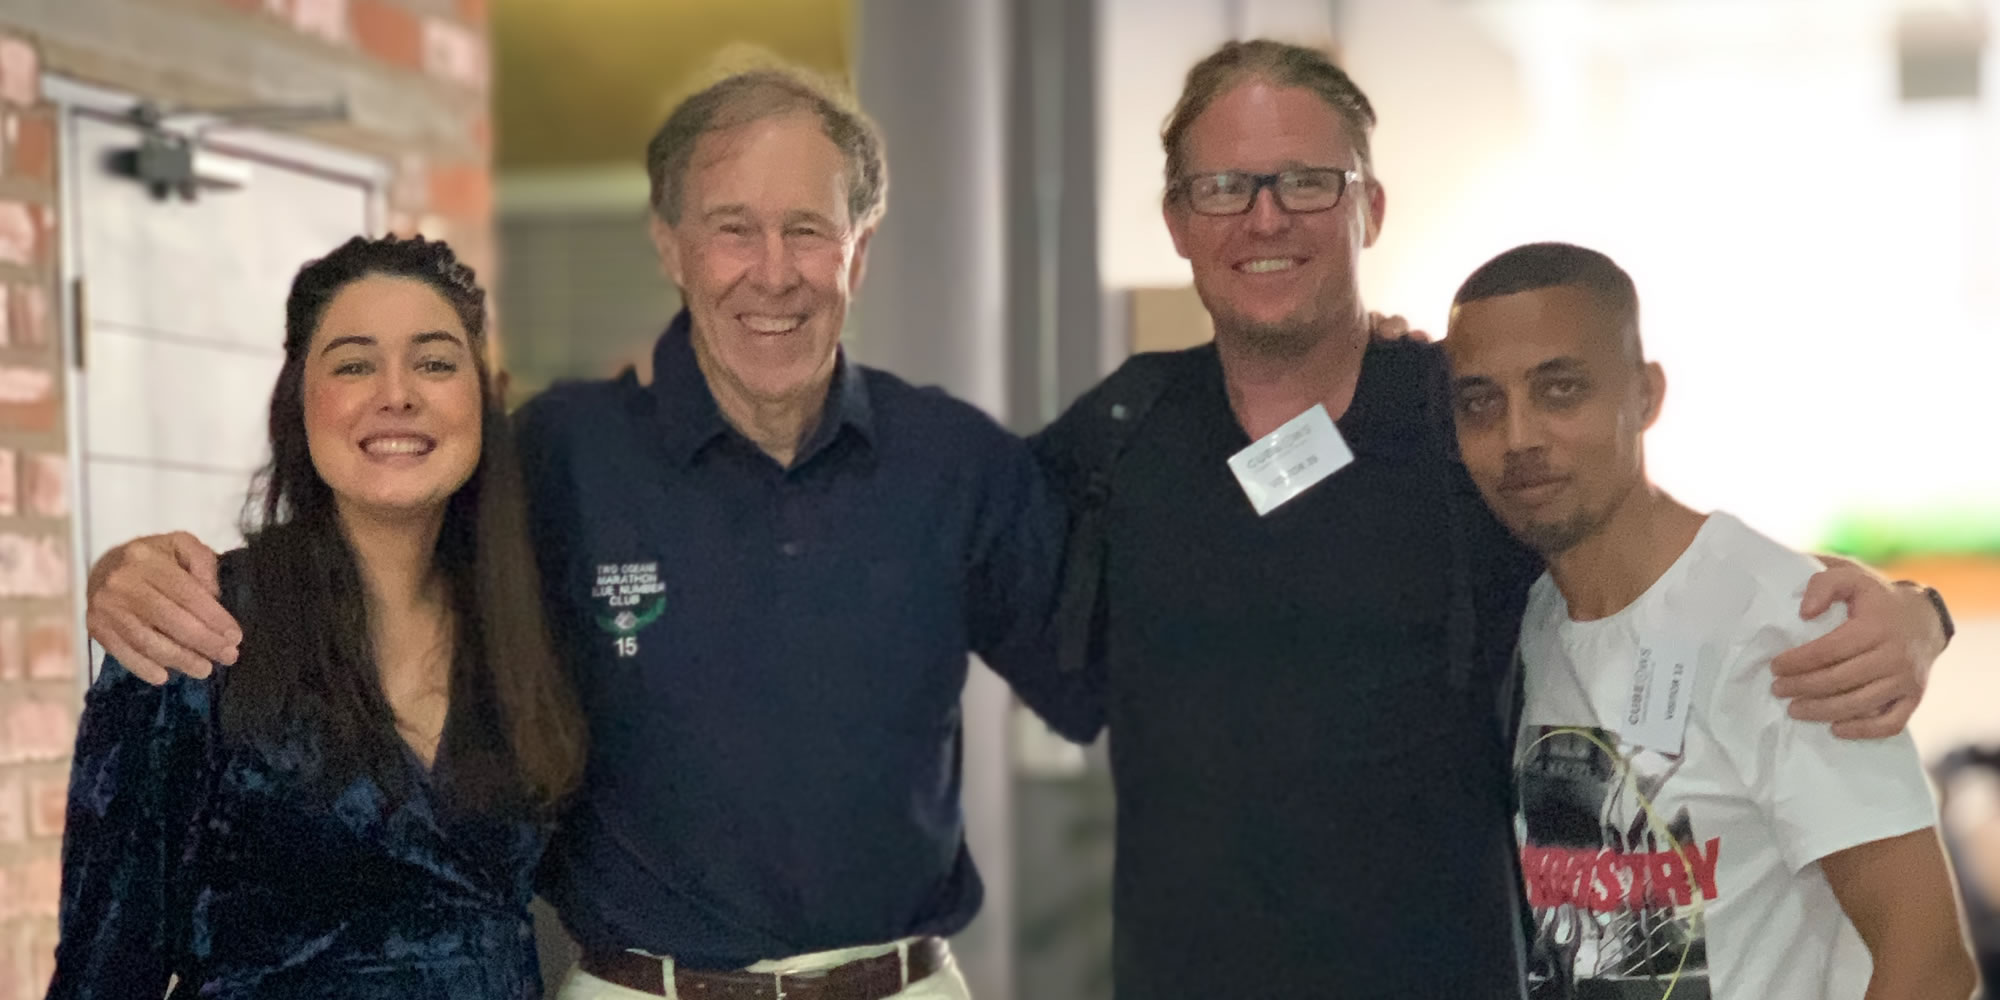 Caley Africa (Heavy Chef), Prof Noakes, Fred Roed (CEO of Heavy Chef) and Randall Adams (Heavy Chef)